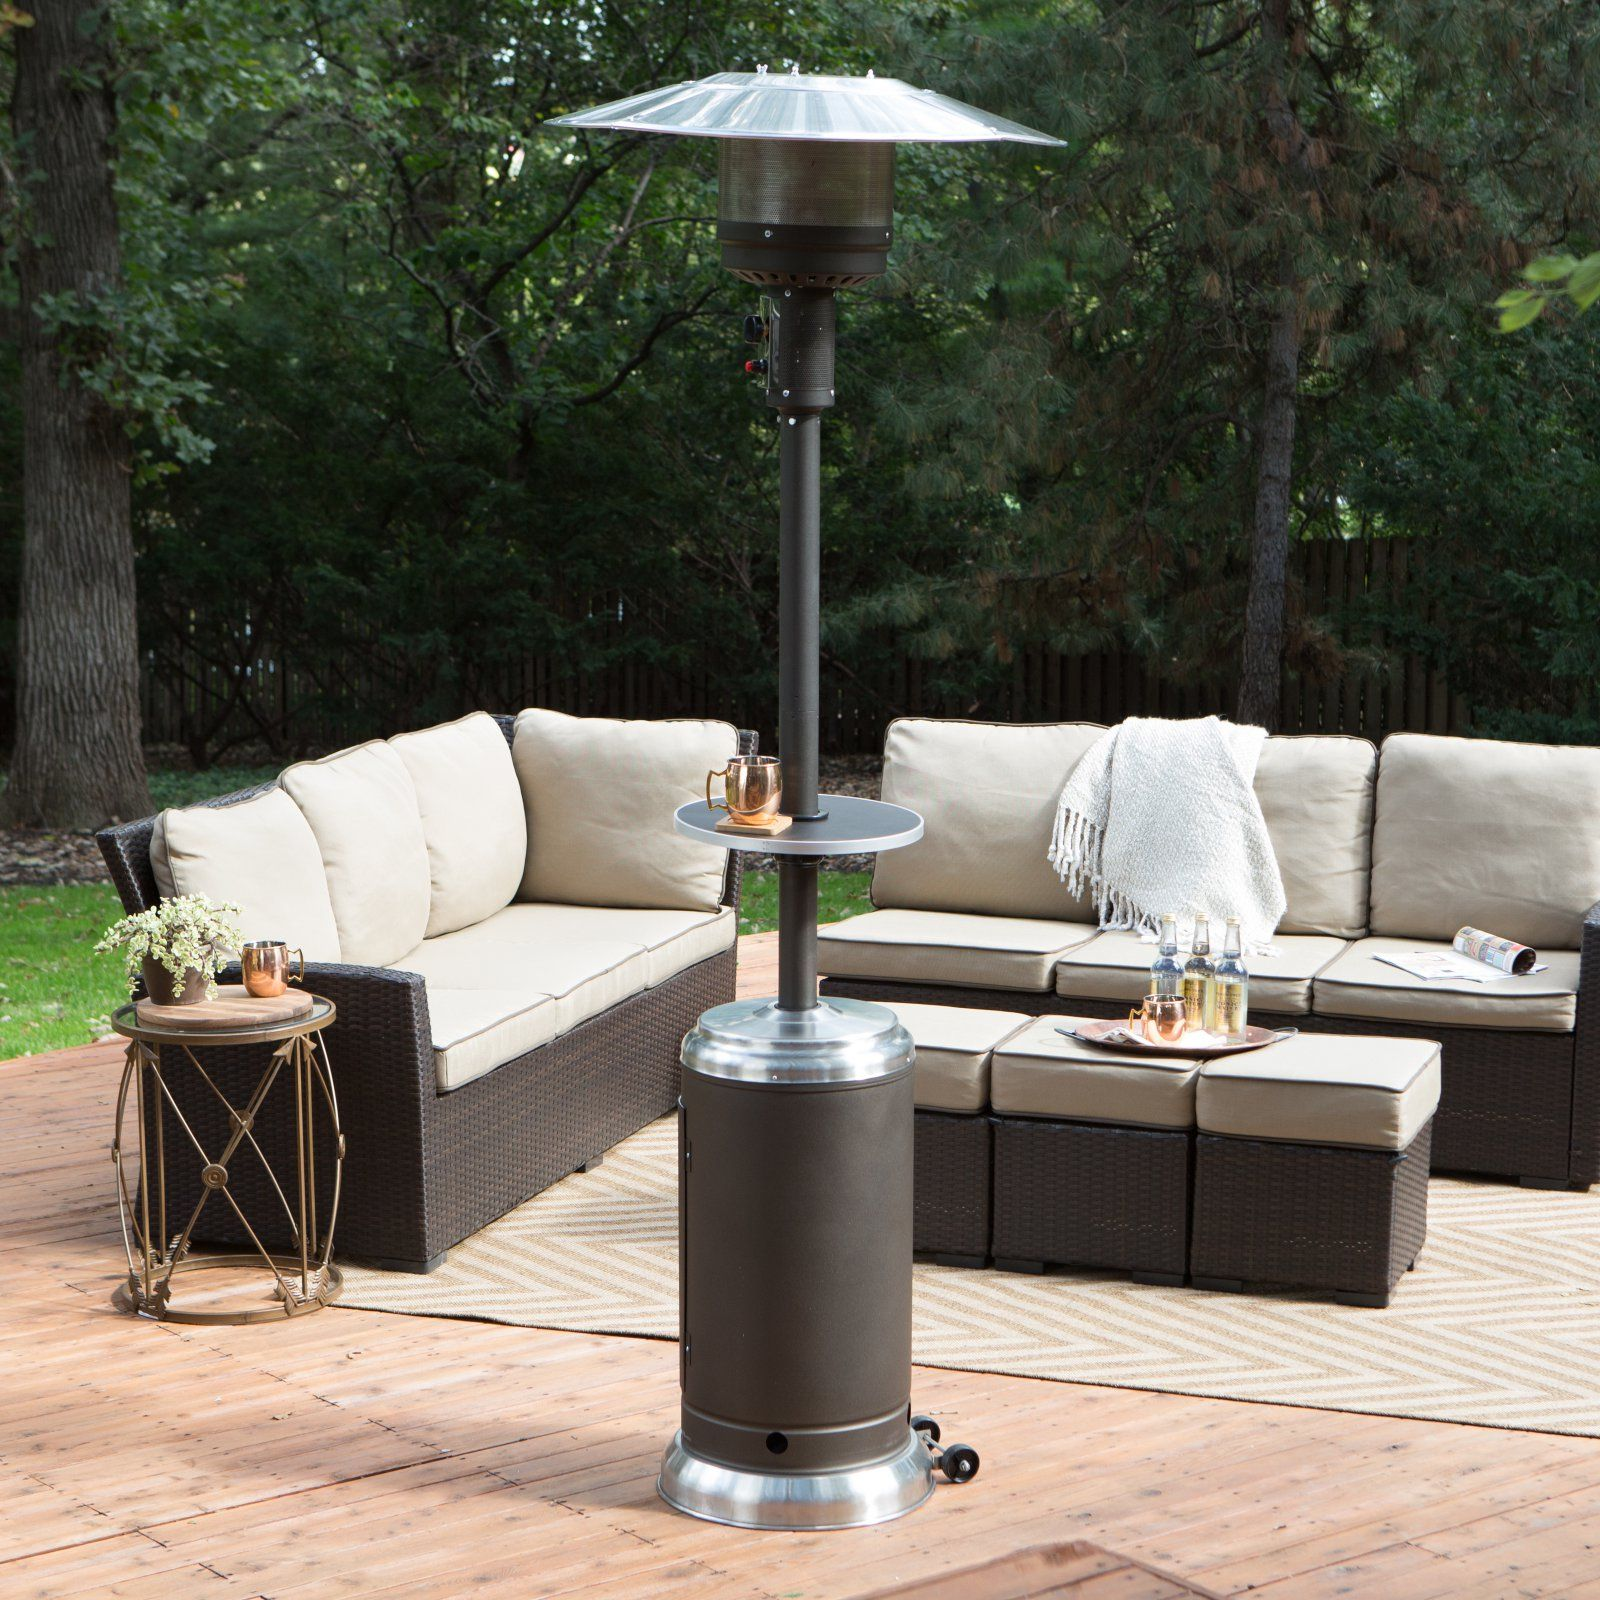 Outstanding Coral Coast Mocha Stainless Steel Commercial Patio Heater Uwap Interior Chair Design Uwaporg